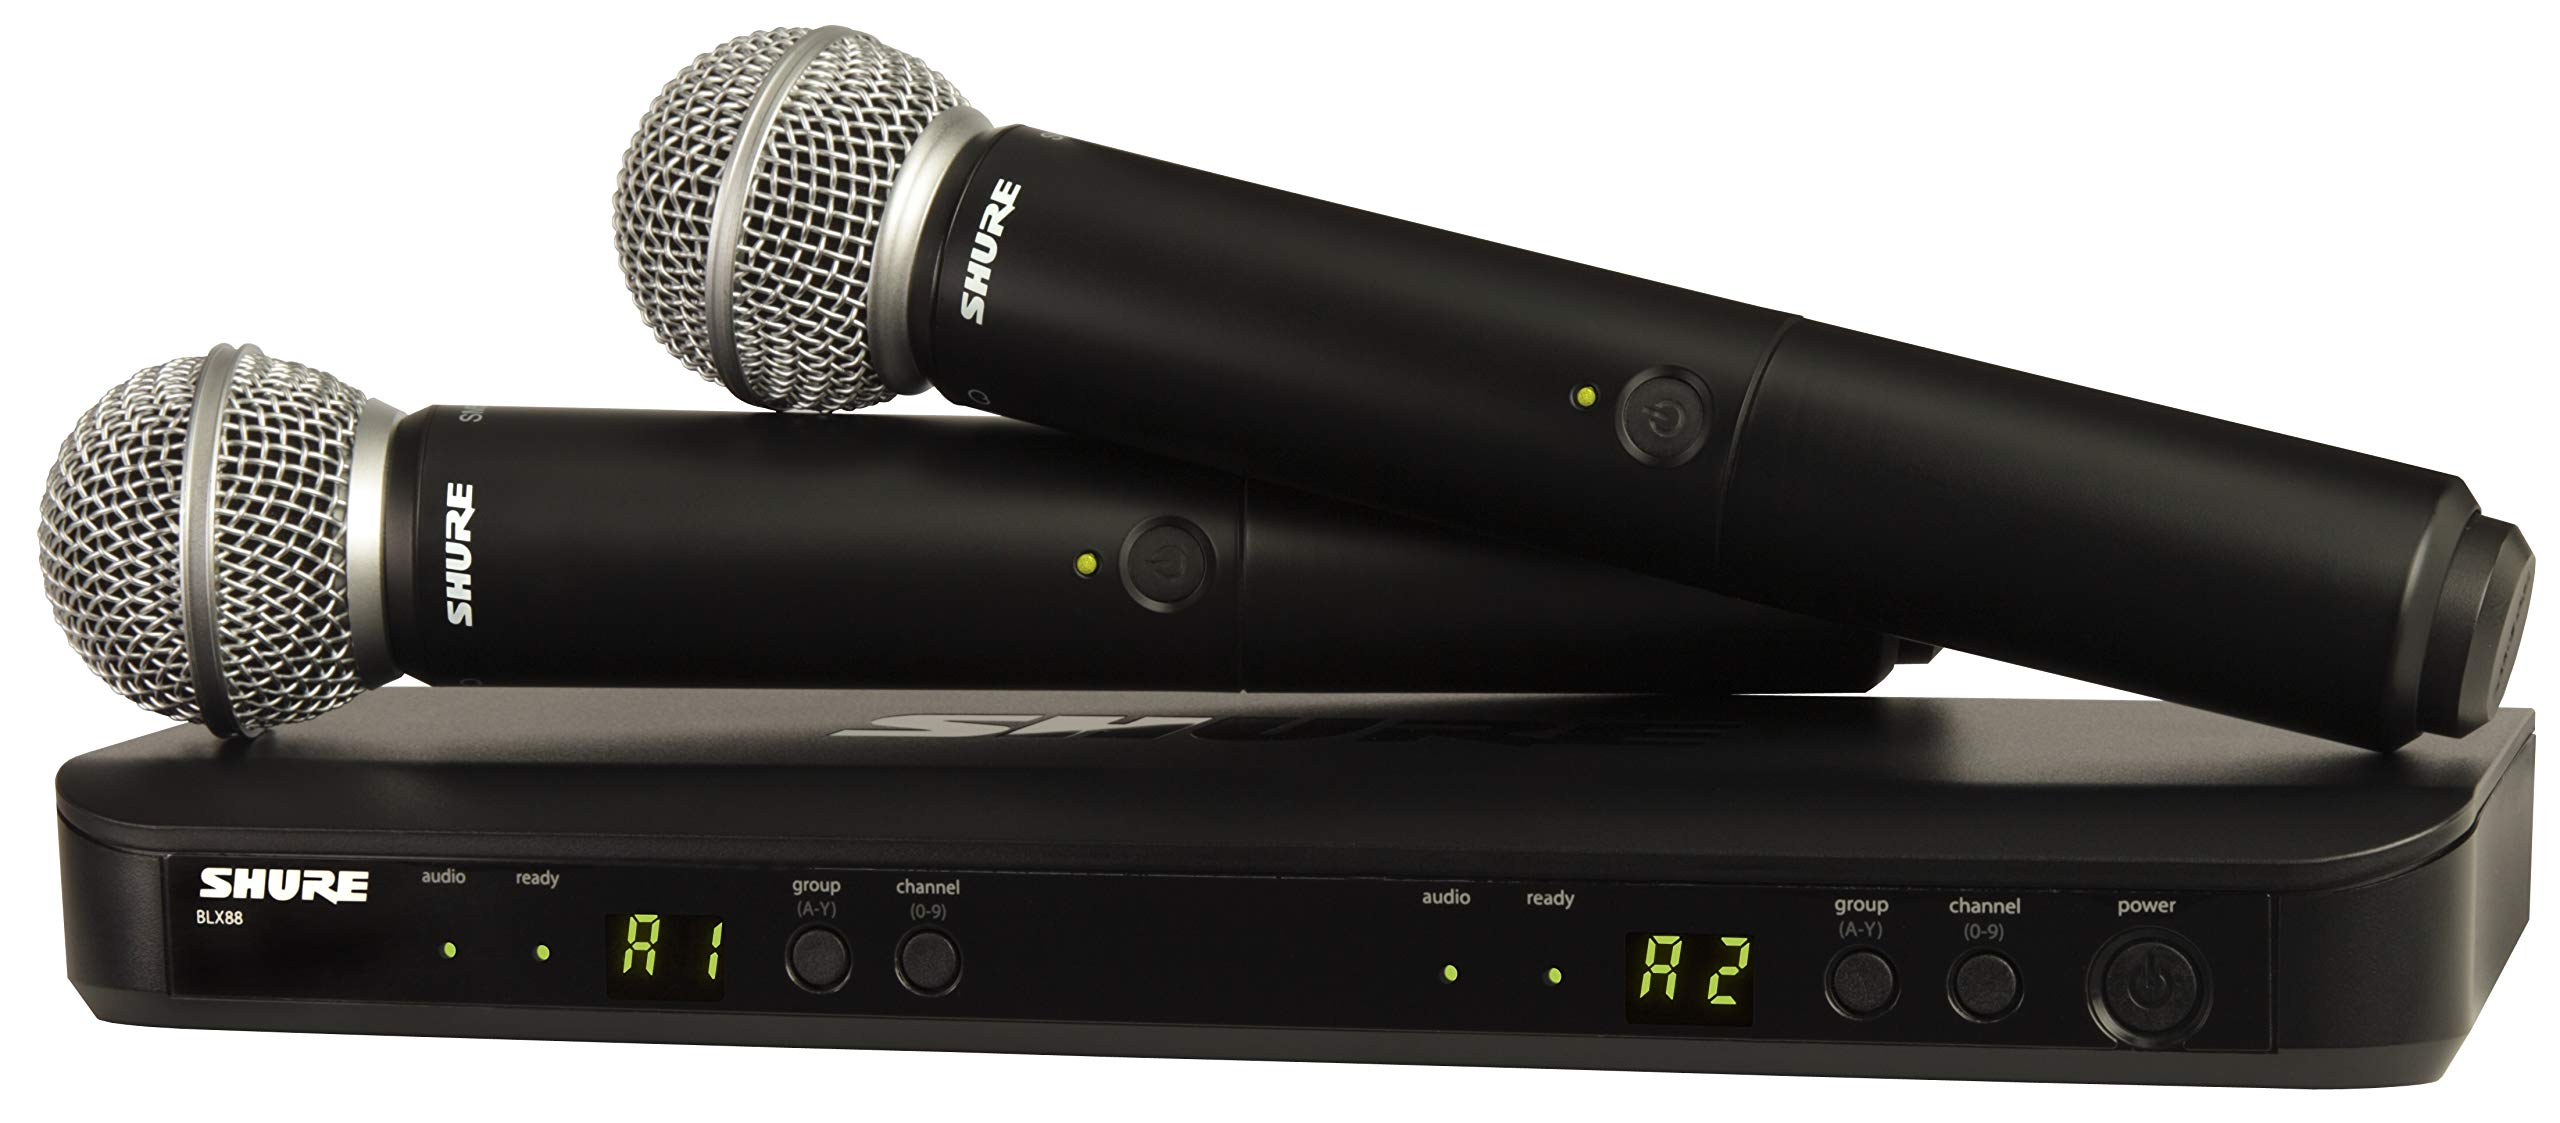 Shure Wireless Microphone System, Black (BLX288/SM58-H9) by Shure